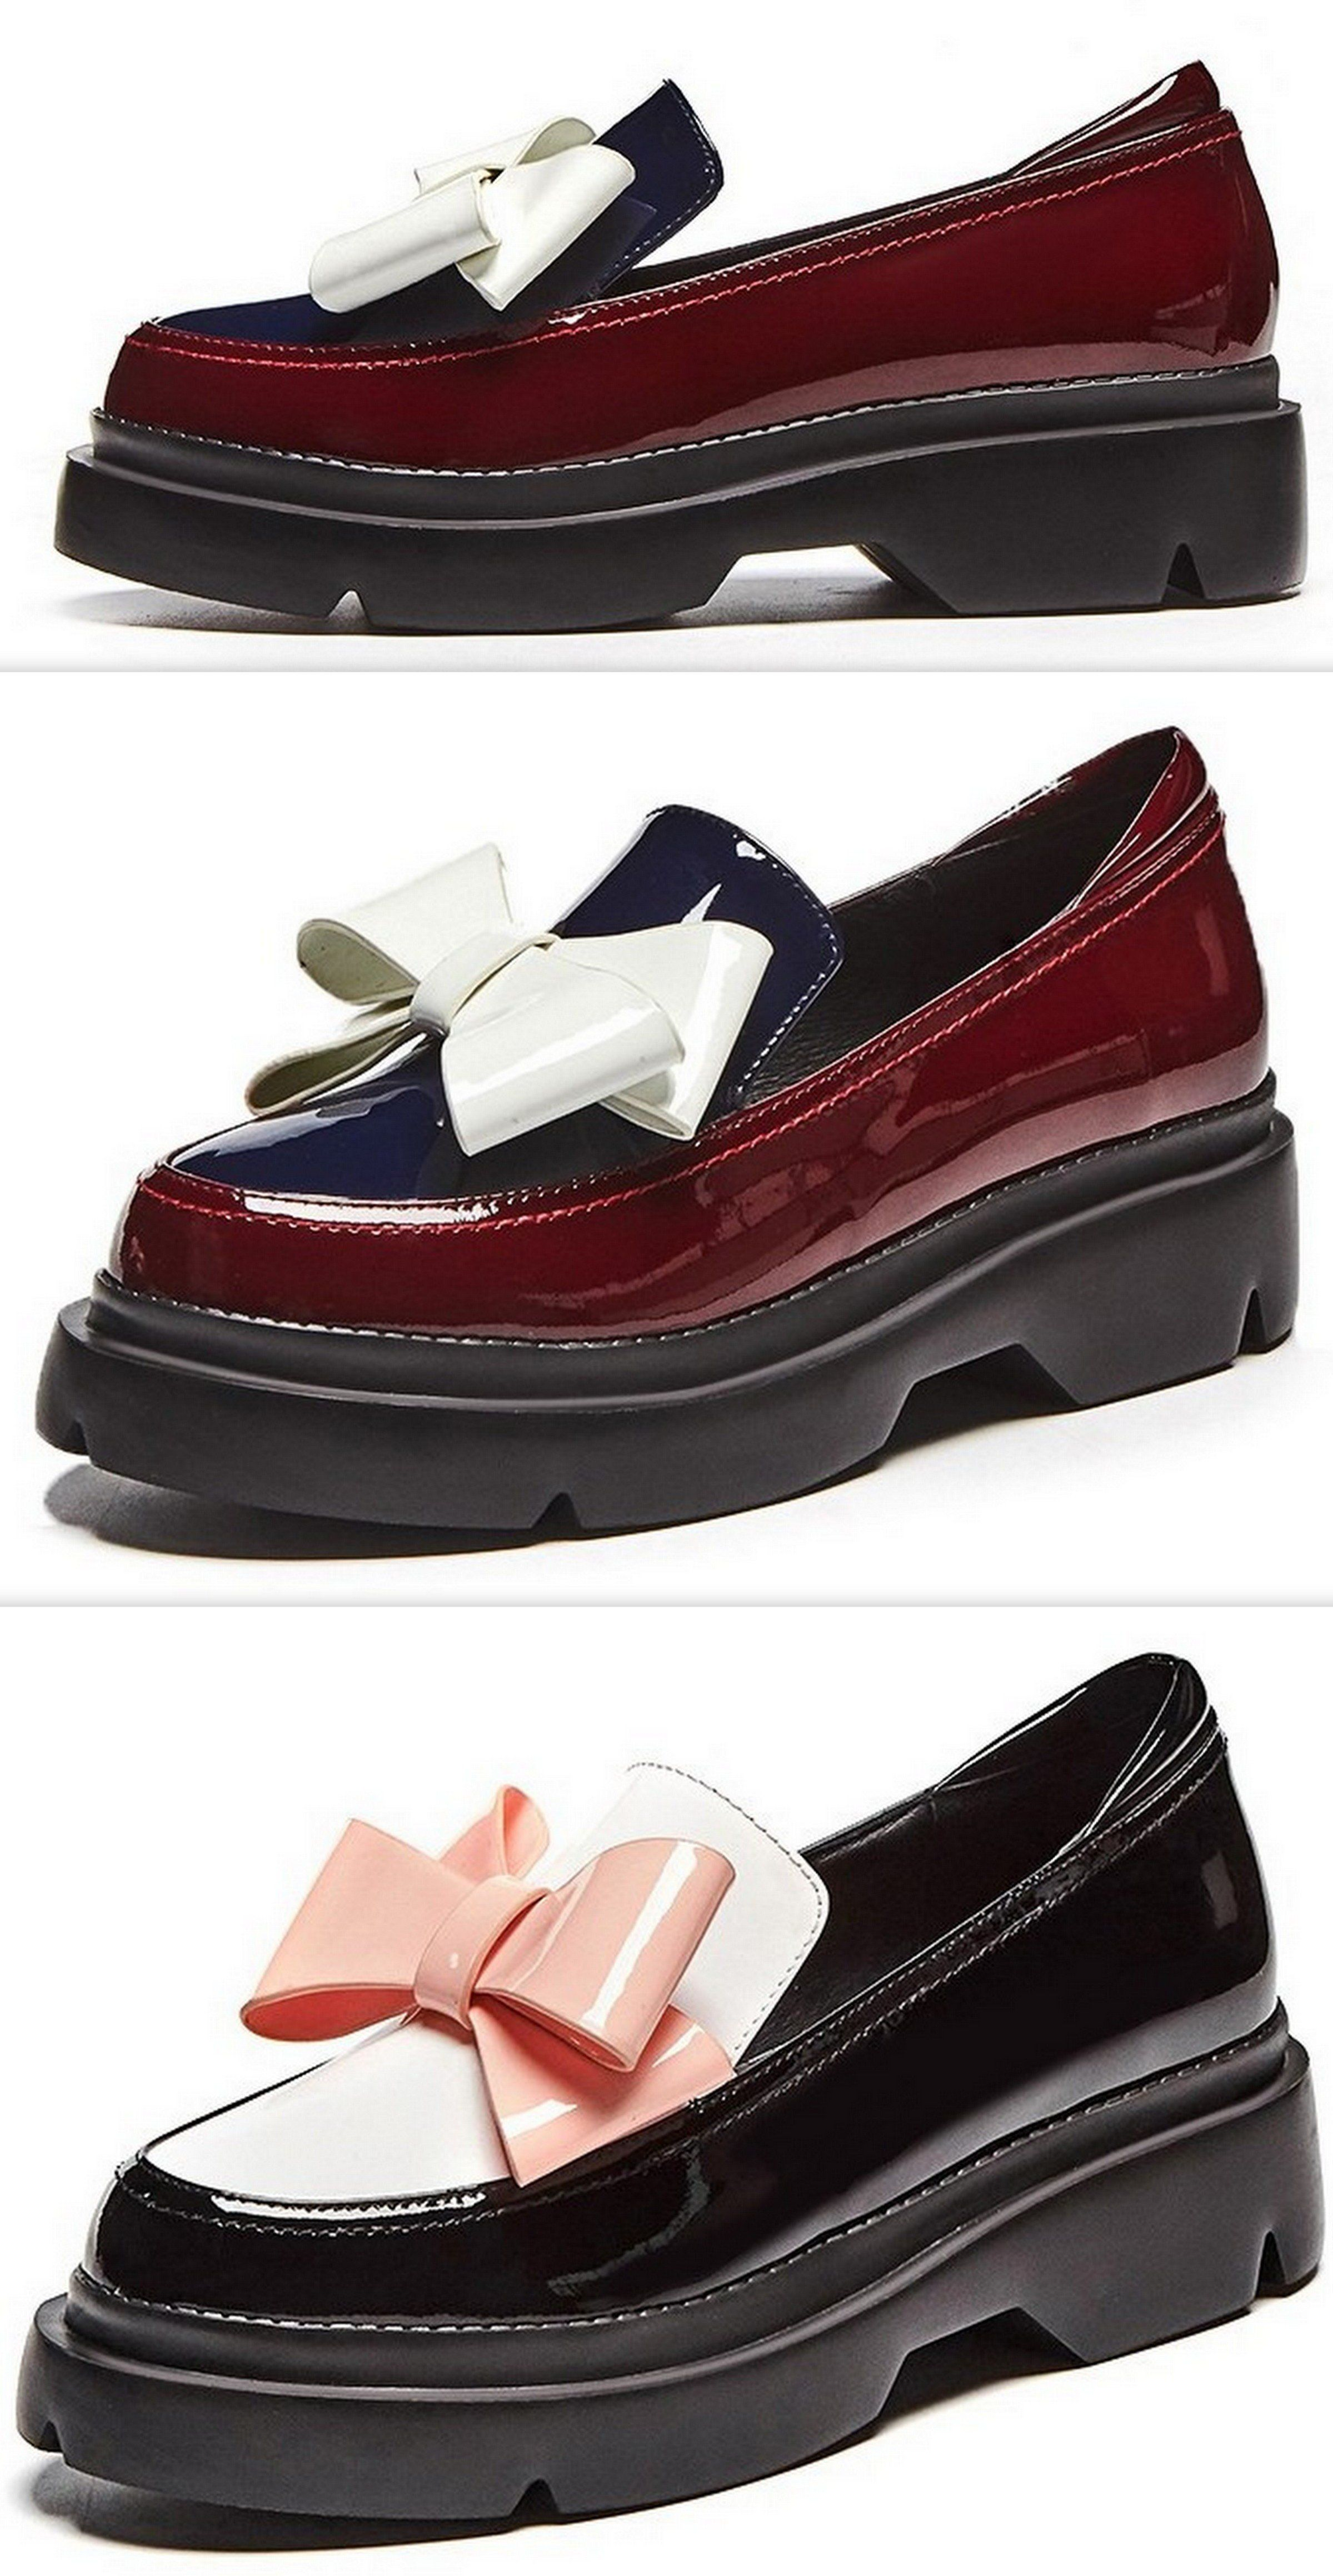 960c93677363 Patent Leather Bow Platform Loafers - Burgundy or Black